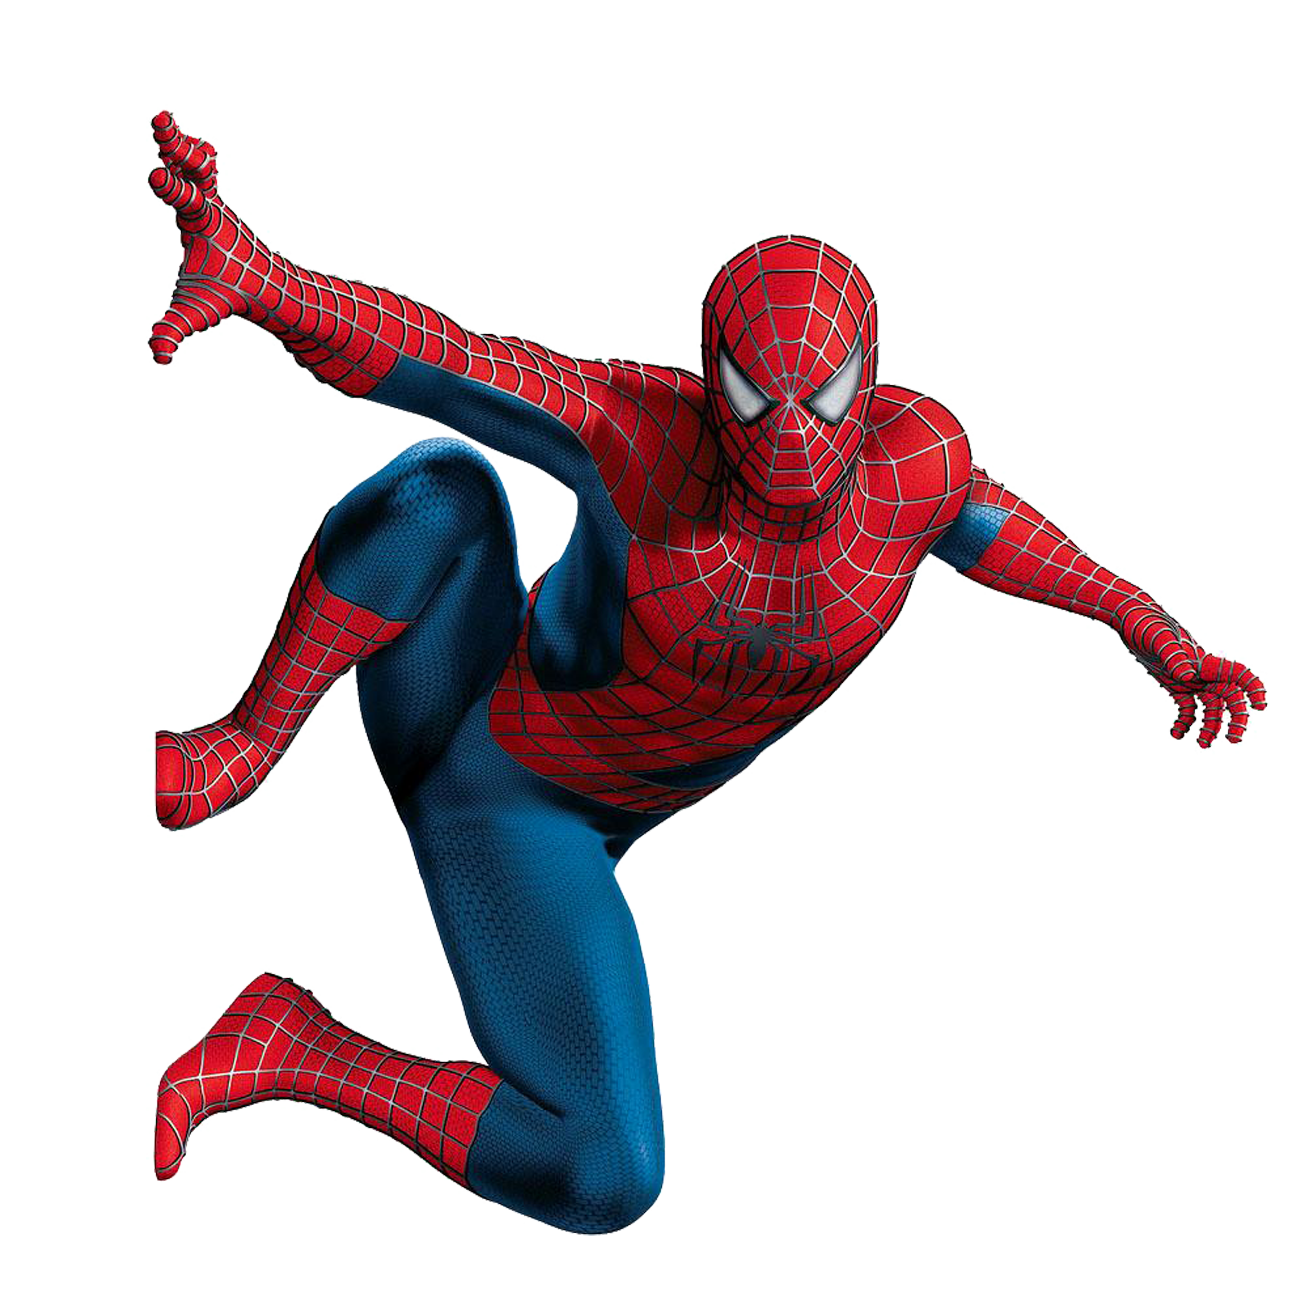 Spiderman PNG - 12206